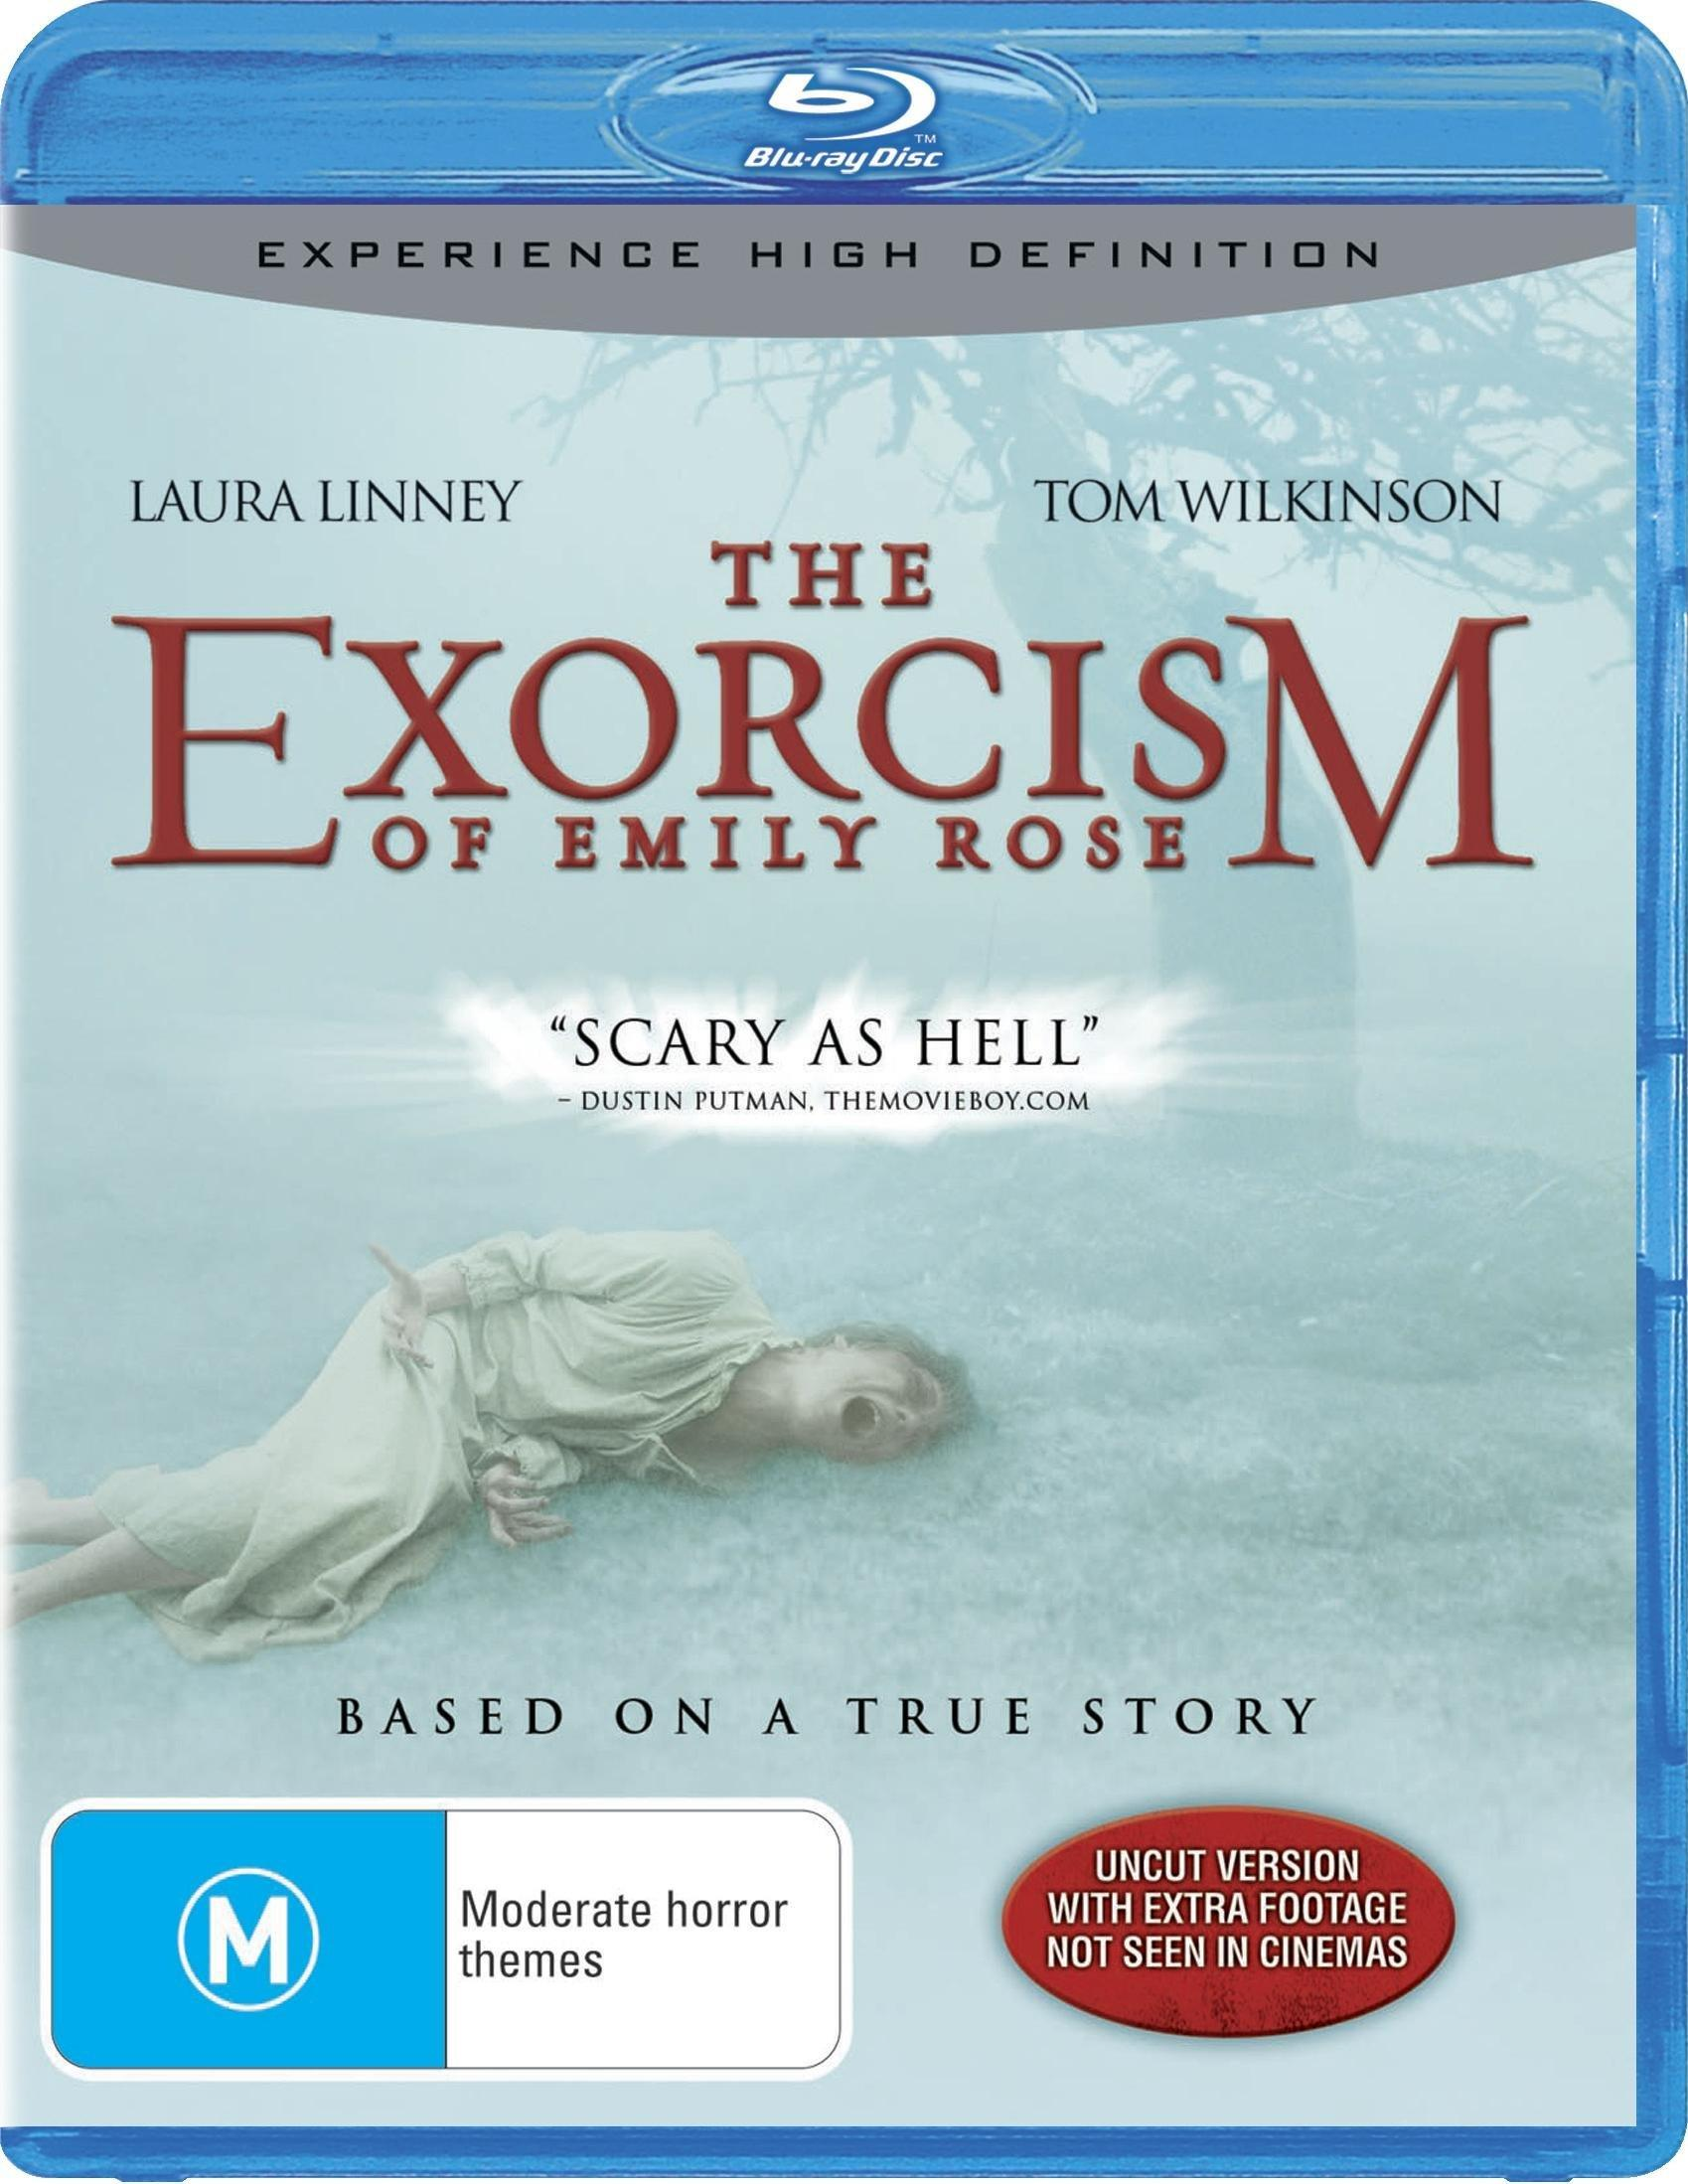 TECNO SHOP FILM BLU-RAY THE EXORCISM OF EMILY ROSE